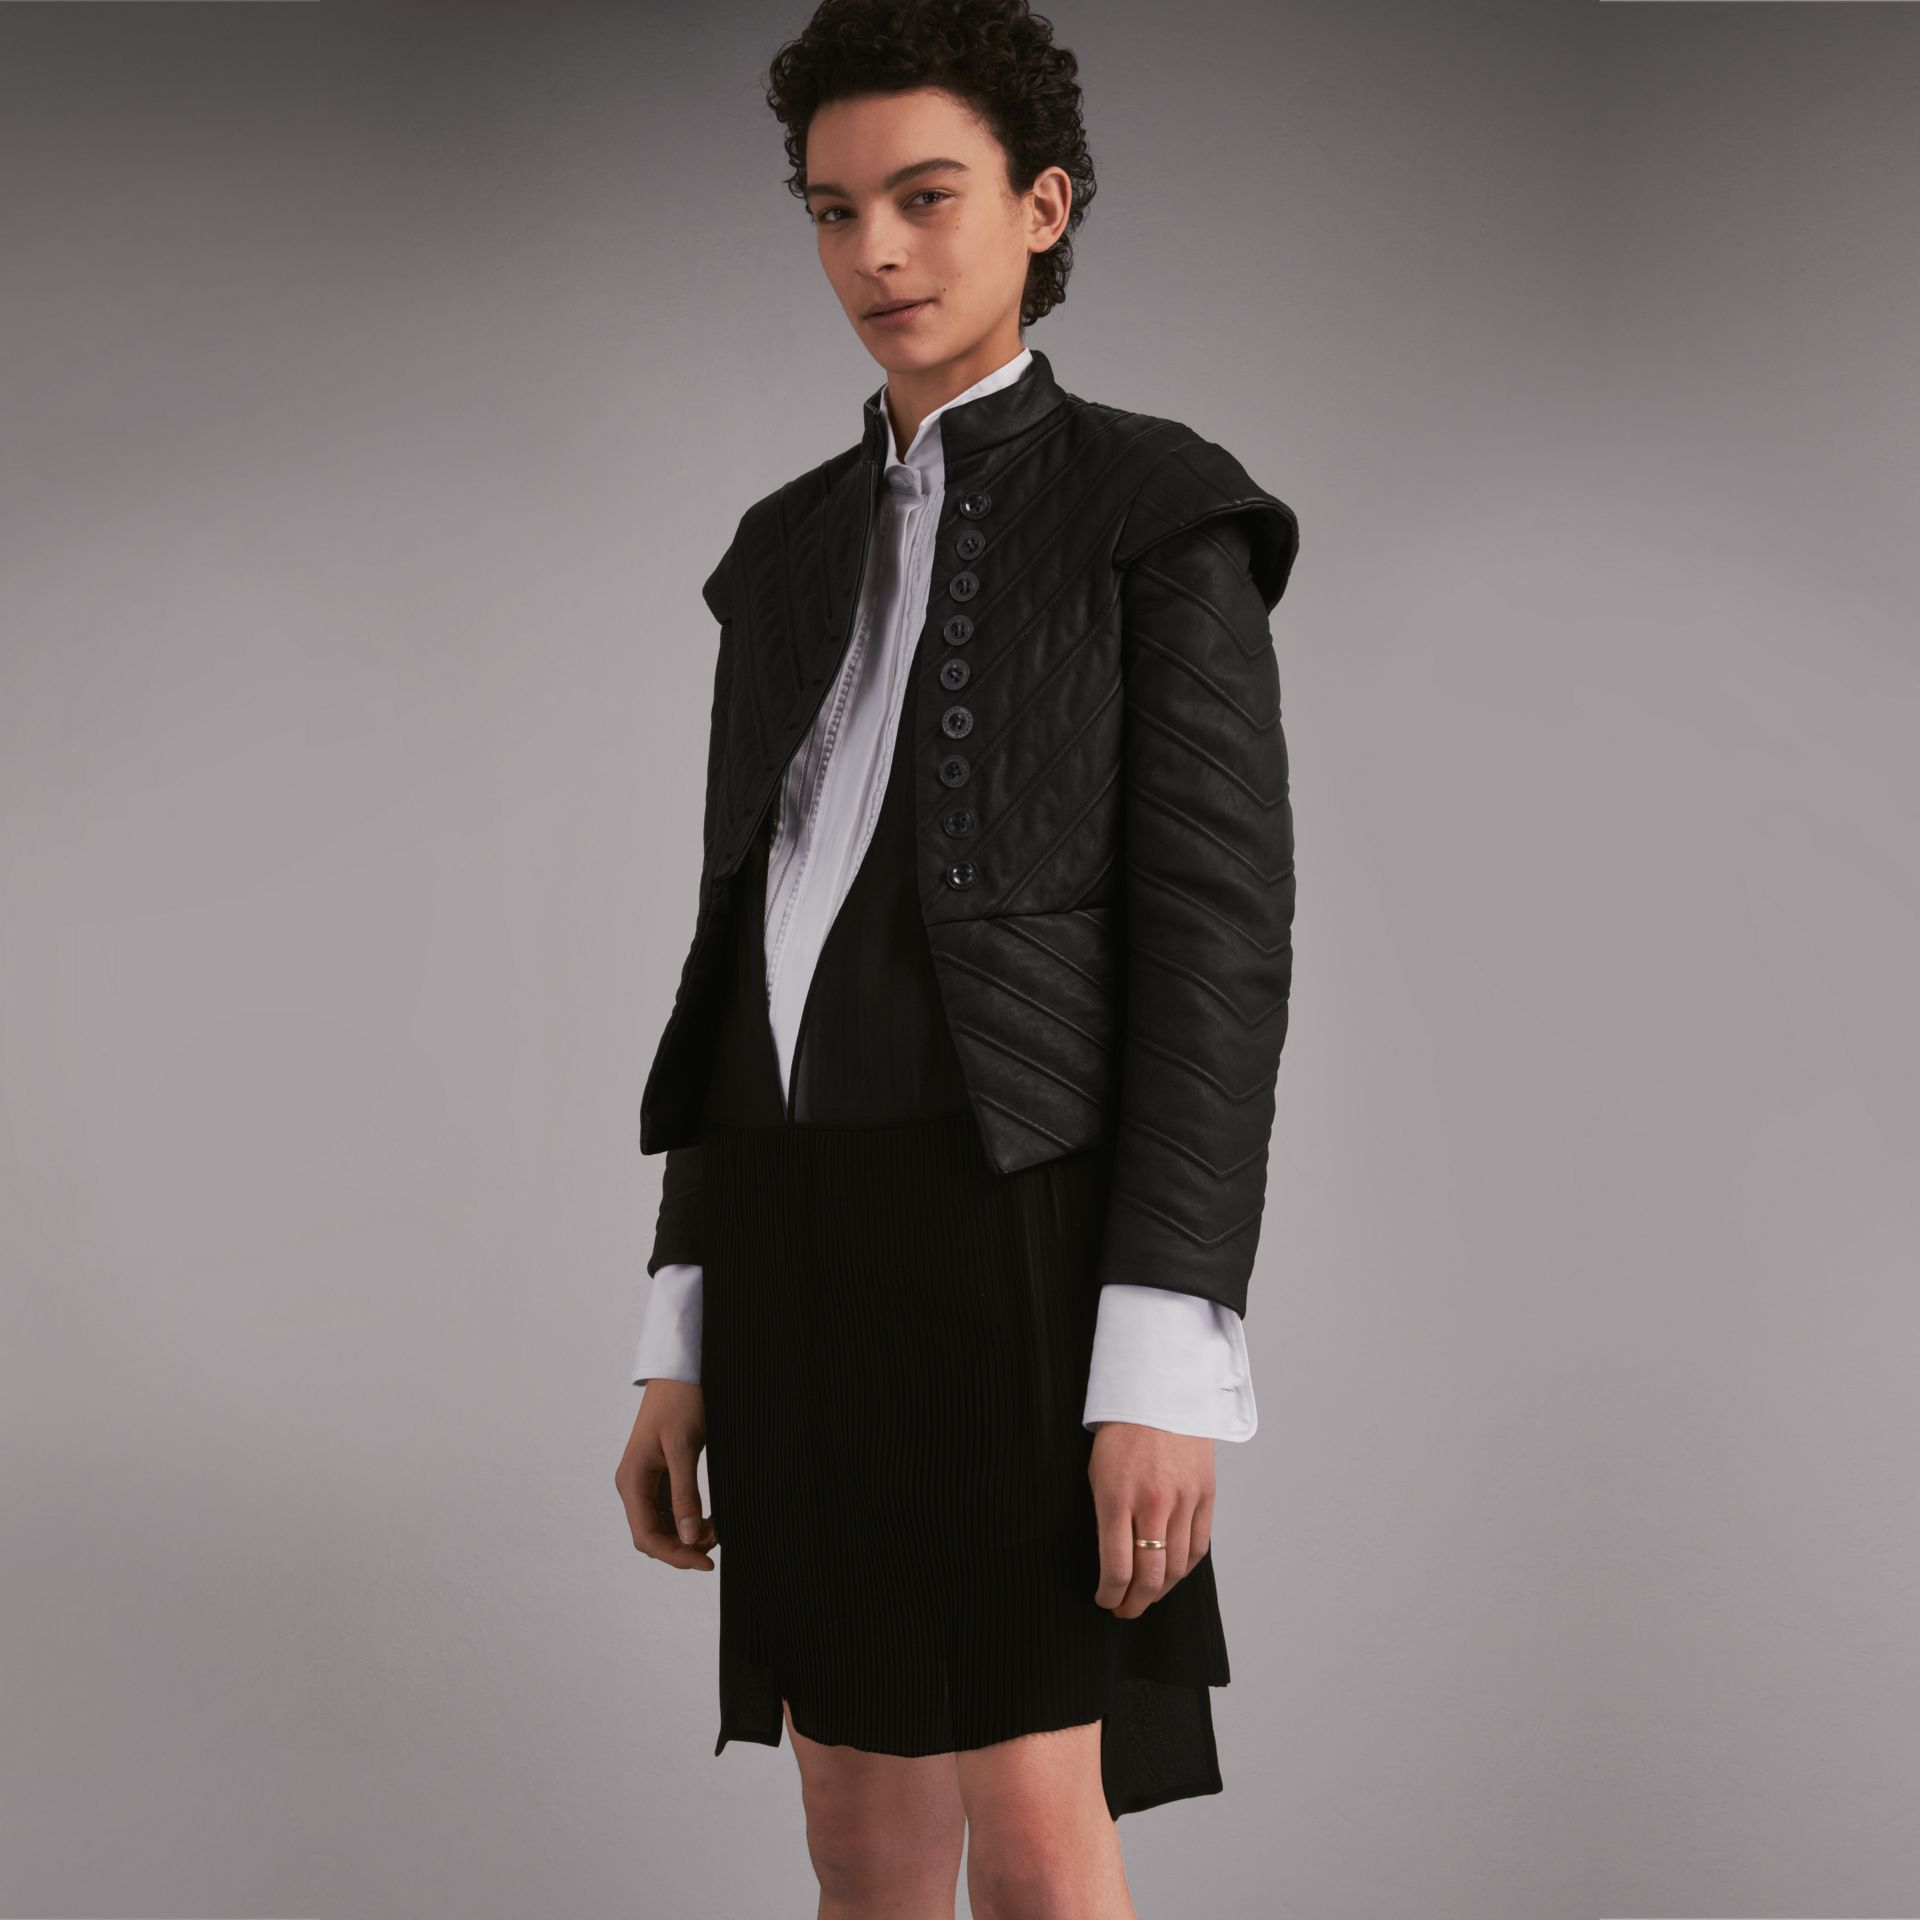 Quilted Lambskin Military-inspired Jacket in Black - Women | Burberry - gallery image 1